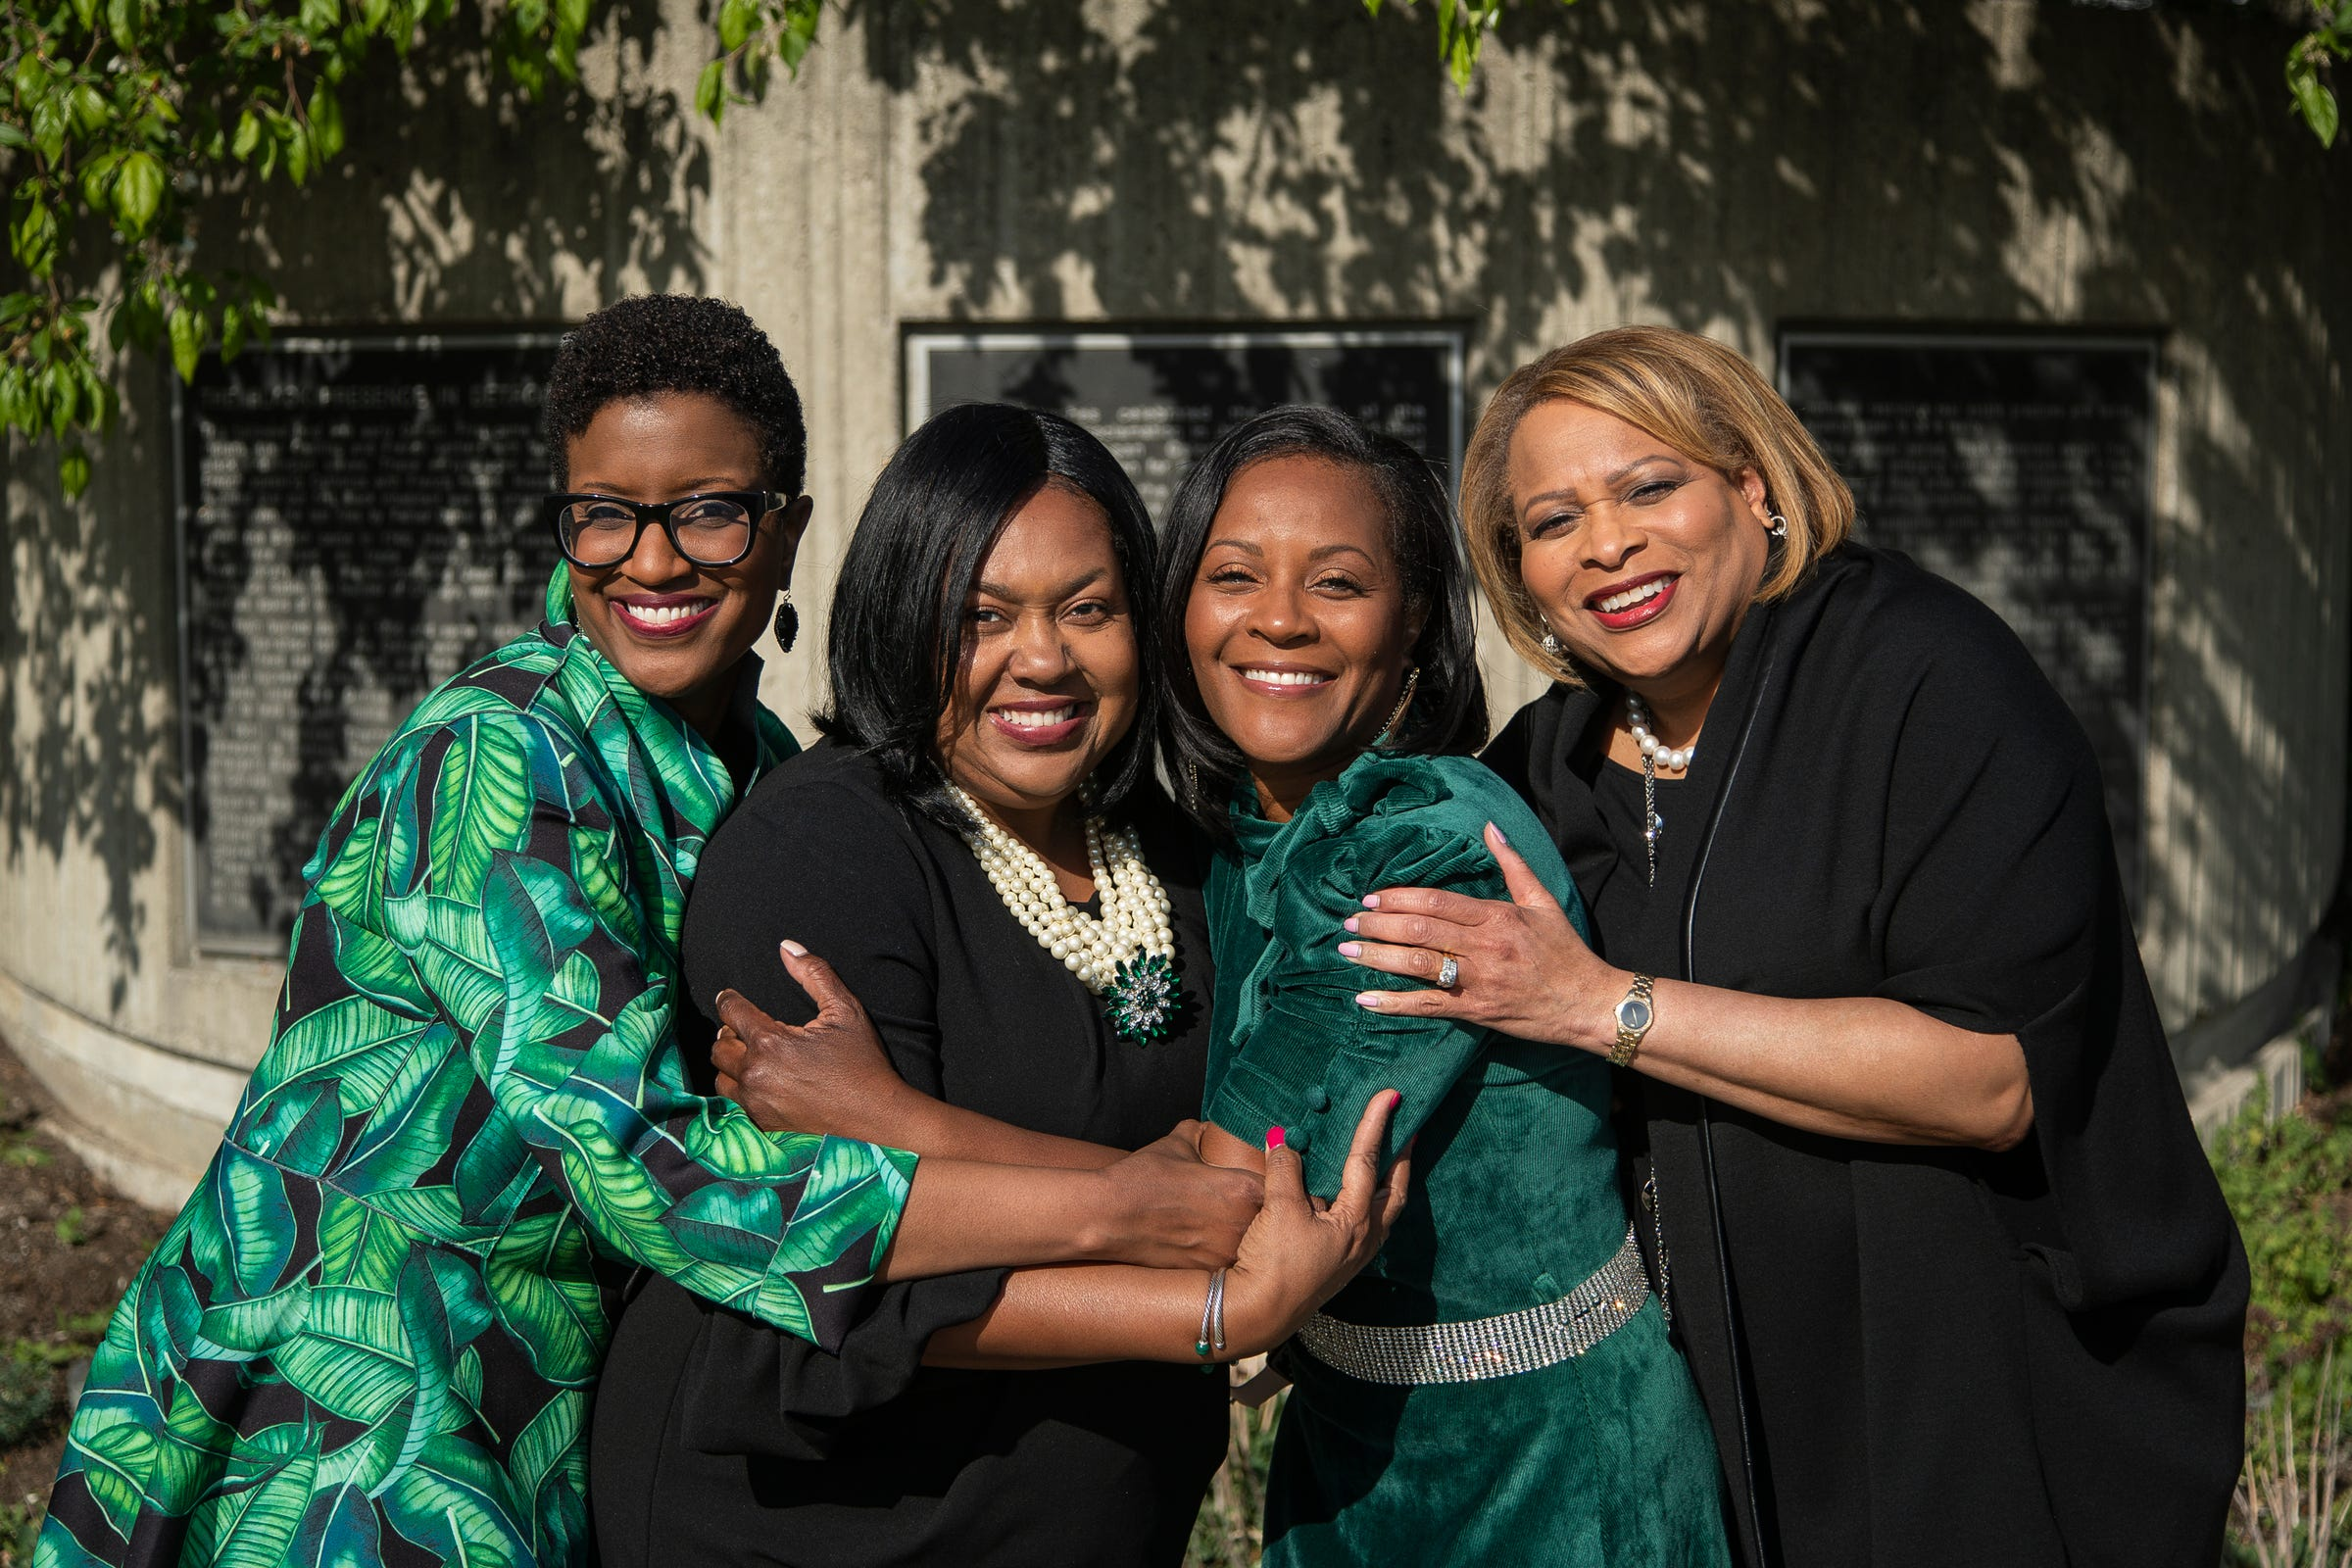 From left, The Links immediate past president Nutrena Tate of the Great Lakes chapter, president Denise Brooks-Williams of the Detroit chapter, president Linda Little of the Renaissance chapter and immediate past president Therese Peace Agboh of the Greater Wayne County chapter in front of the the Black Presence in Detroit historical marker in Detroit on May 13, 2021.